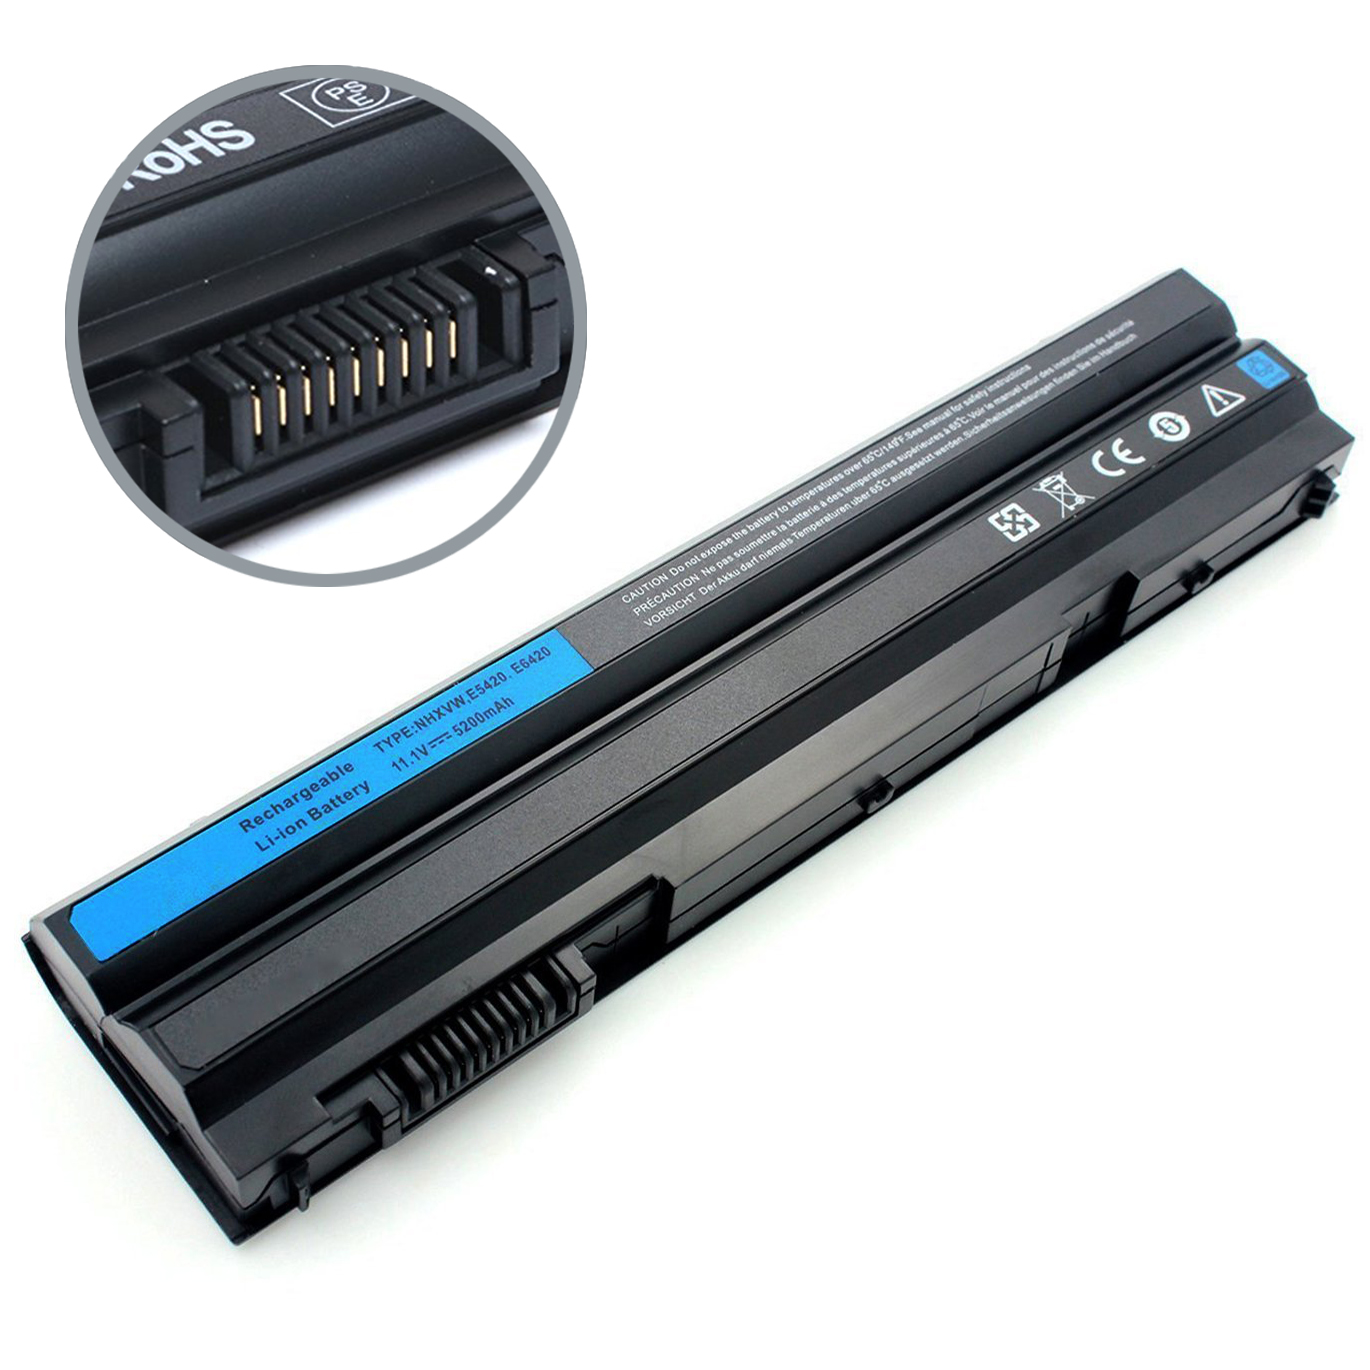 EBK 6Cell 5200mAh Type: T54FJ laptop battery for DELL Inspiron 4420 4520 4720 5420 5425 5520 5525 5720 7420 7520 7720 Series,DELL Inspiron 14R 15R 17R laptop battery